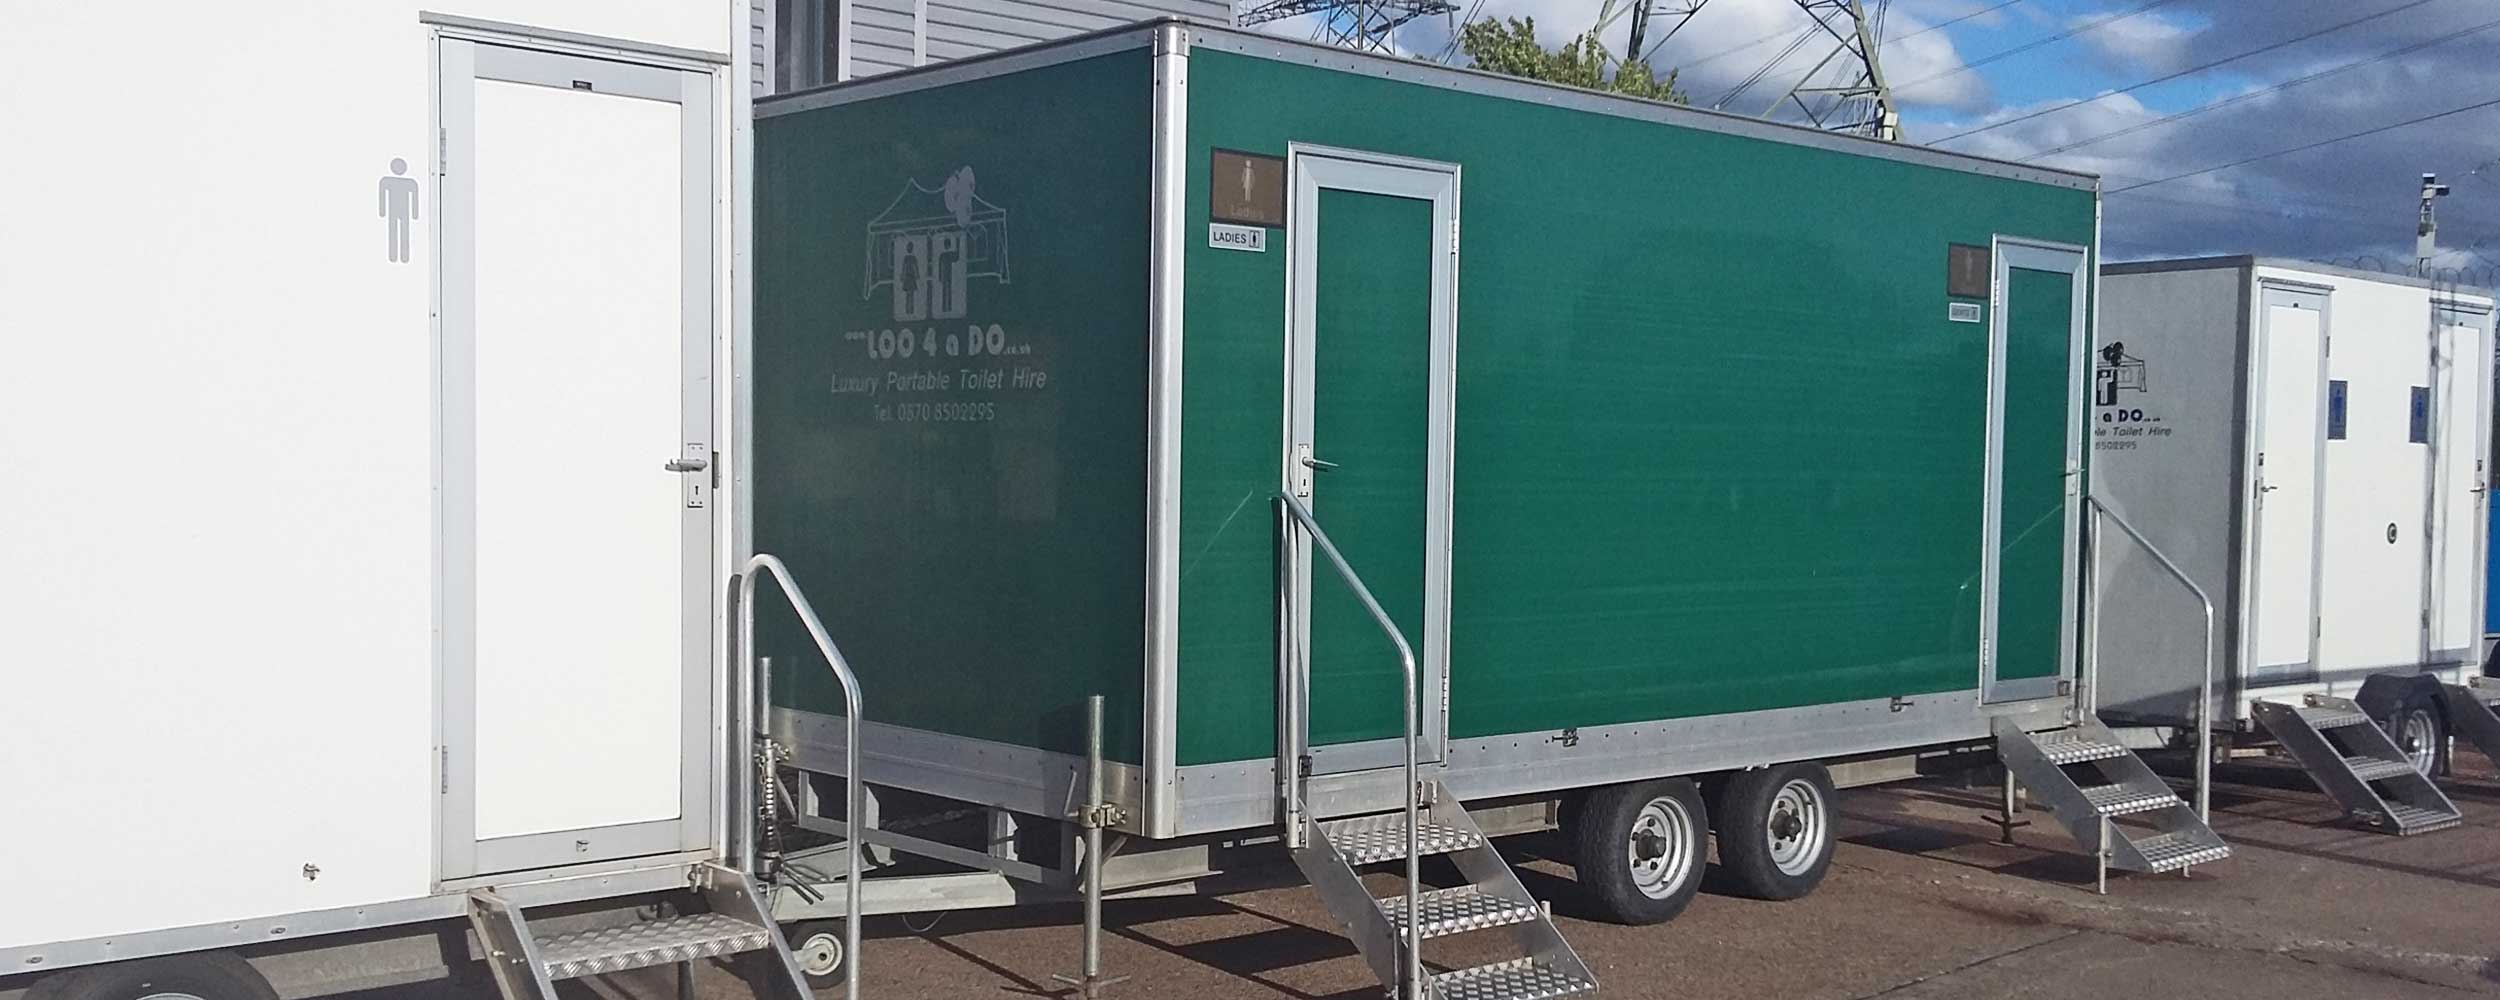 toilet trailer trailers alura mobile products click systems portable image enlarge projects bathroom restroom to index